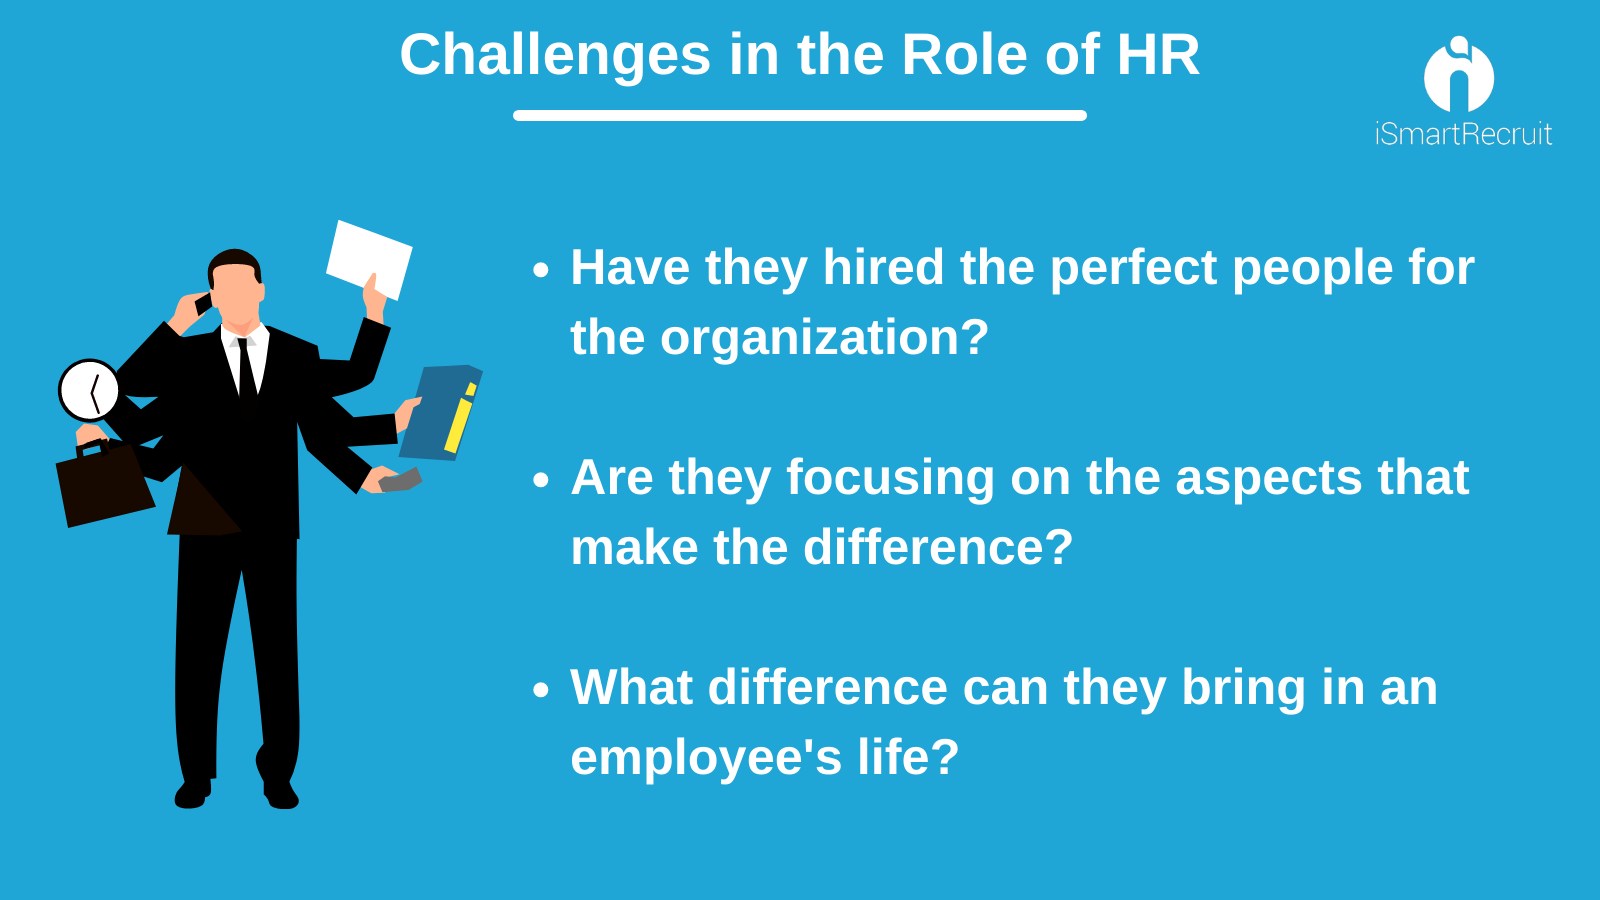 challenges in the role of HR